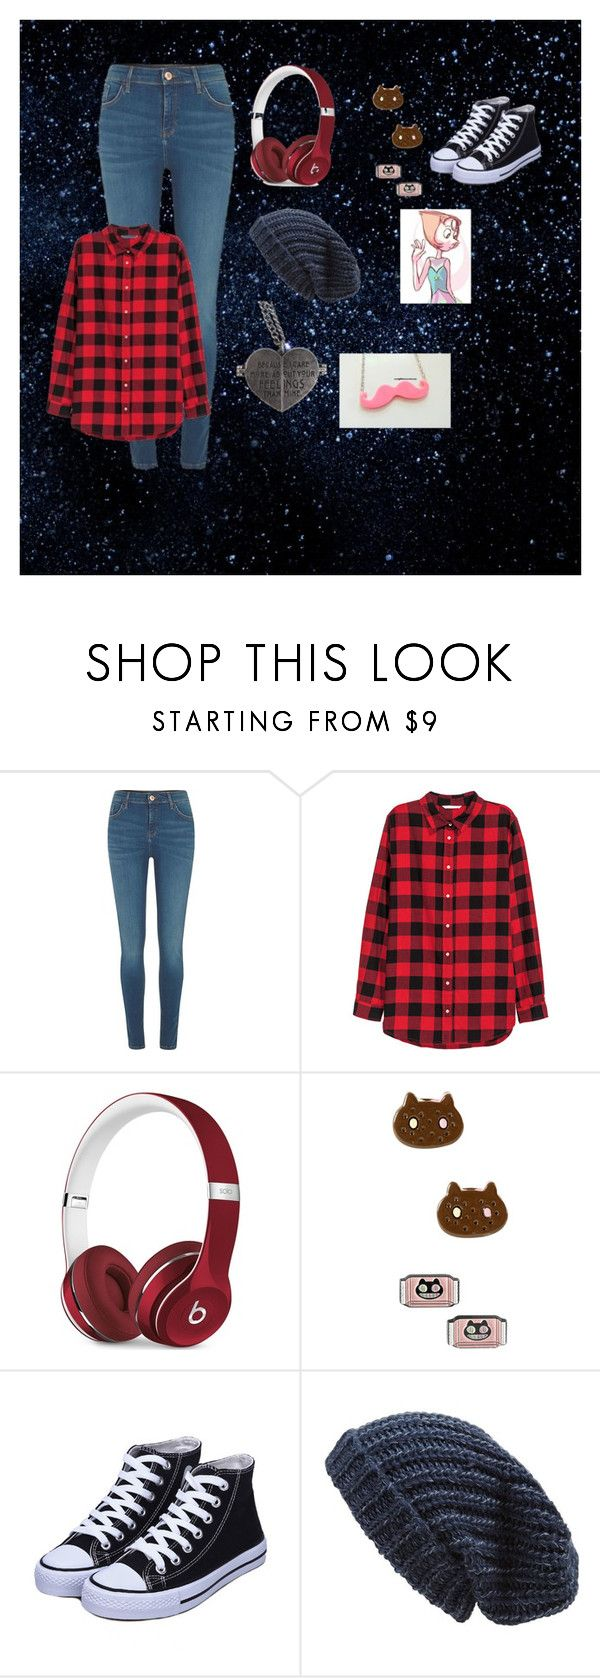 """""""Jaiden Smith #6"""" by maya-fischbach on Polyvore featuring River Island, H&M, Beats by Dr. Dre, Cartoon Network and Phase 3"""